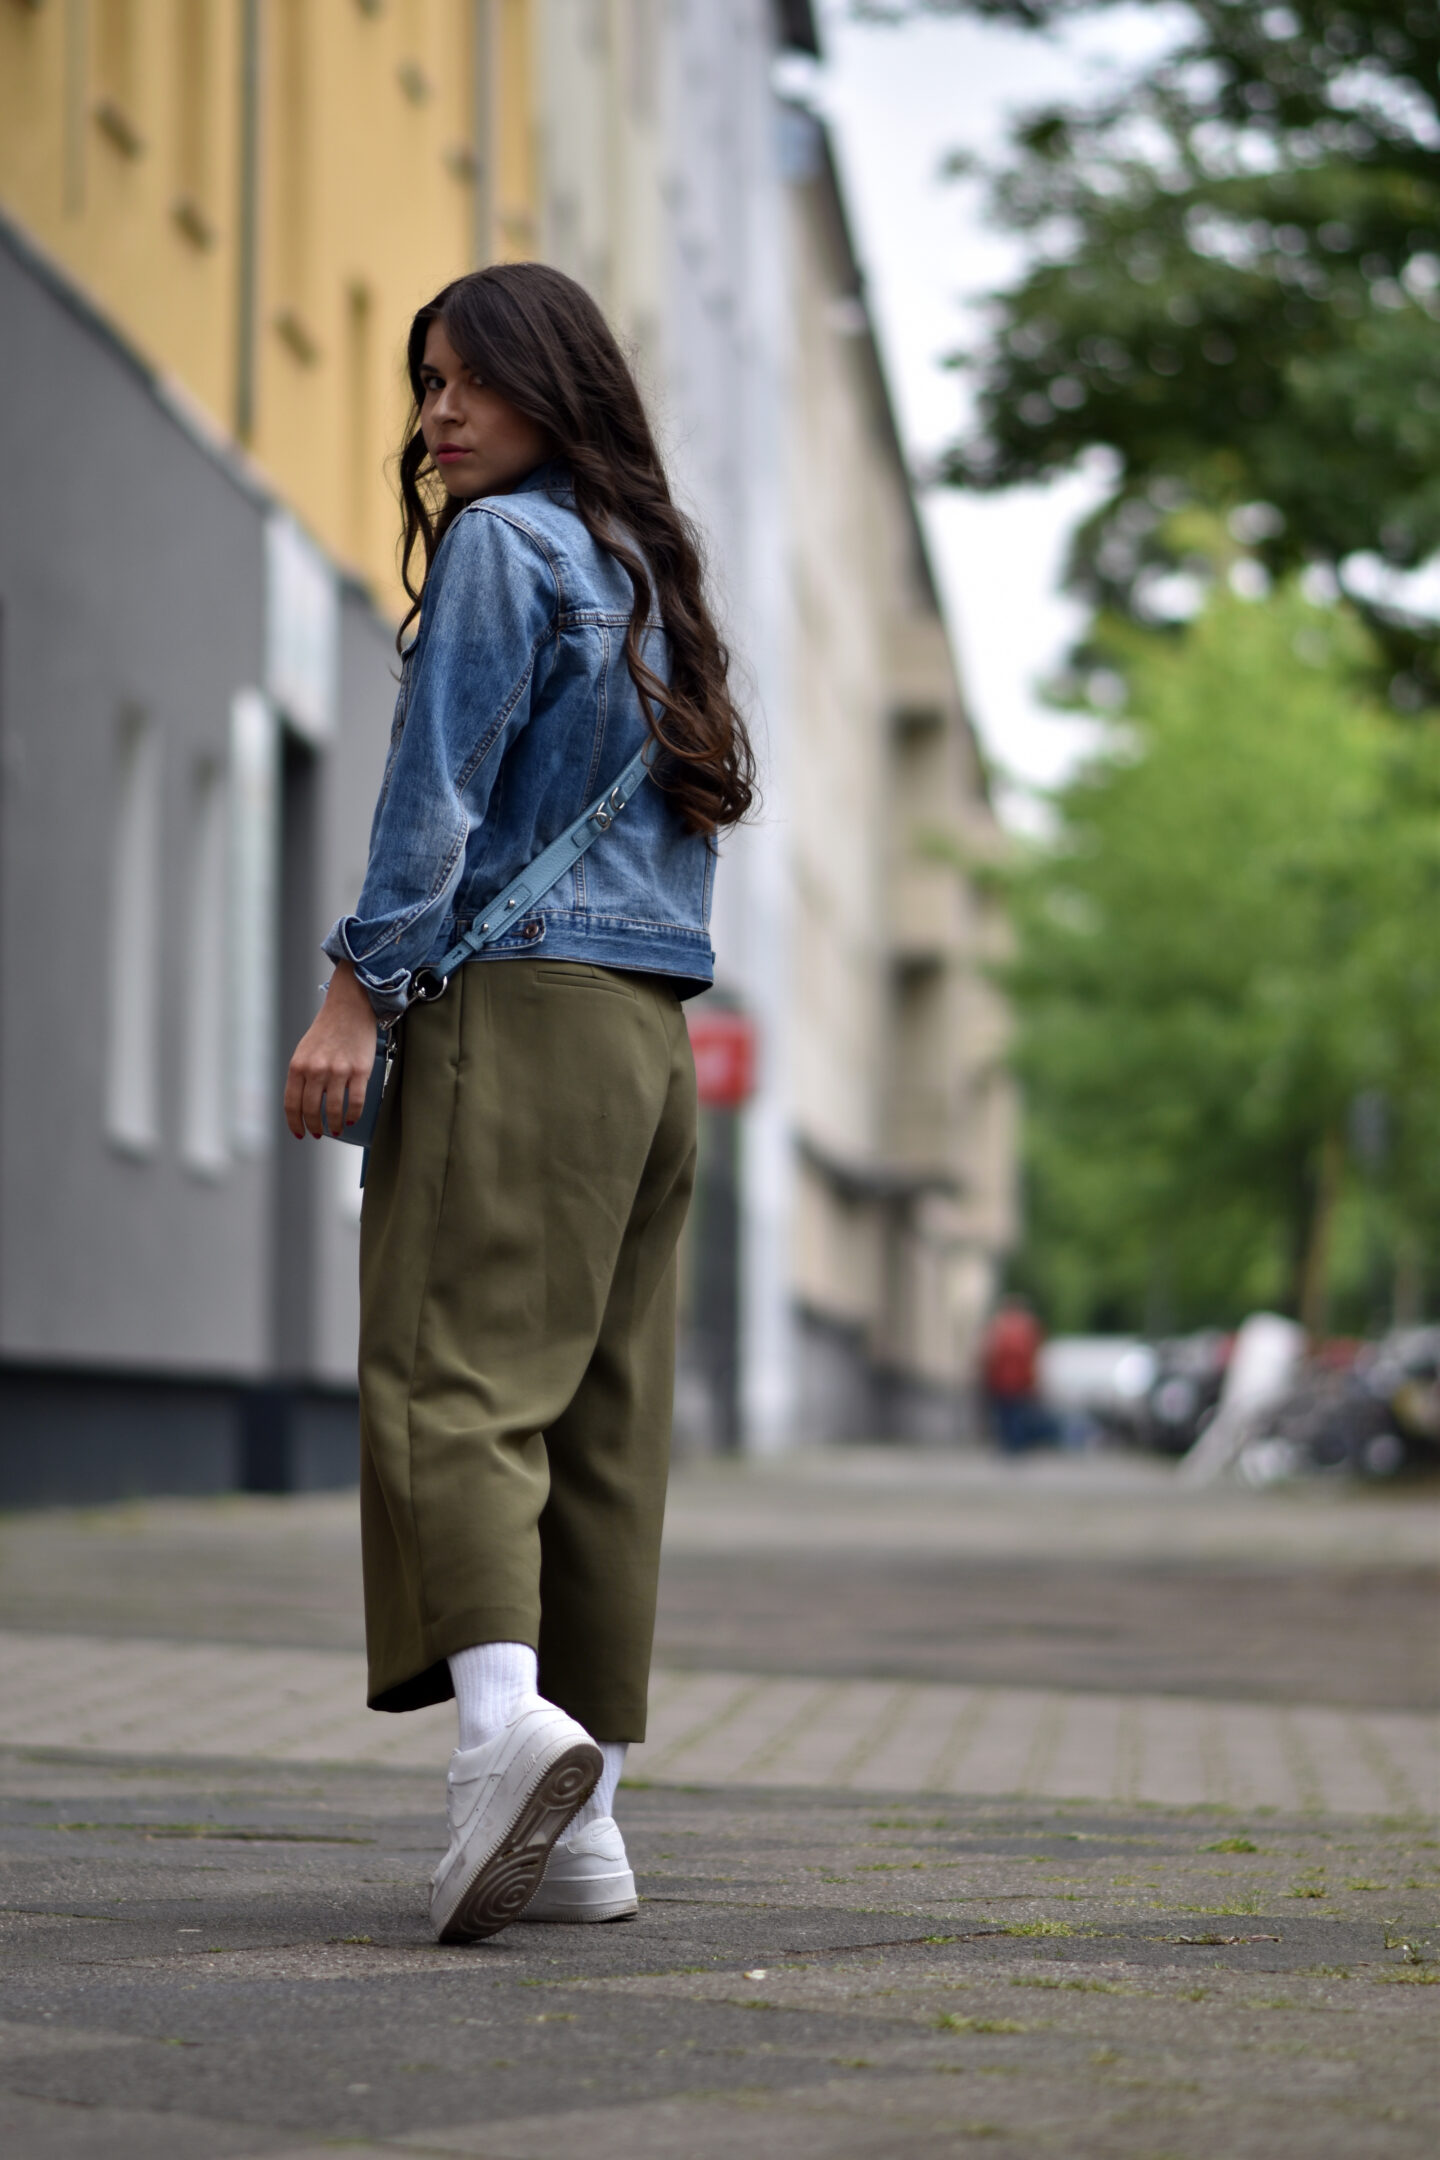 Streetstyle mit Jeansjacke und Nike Air Force 1 Sneakern